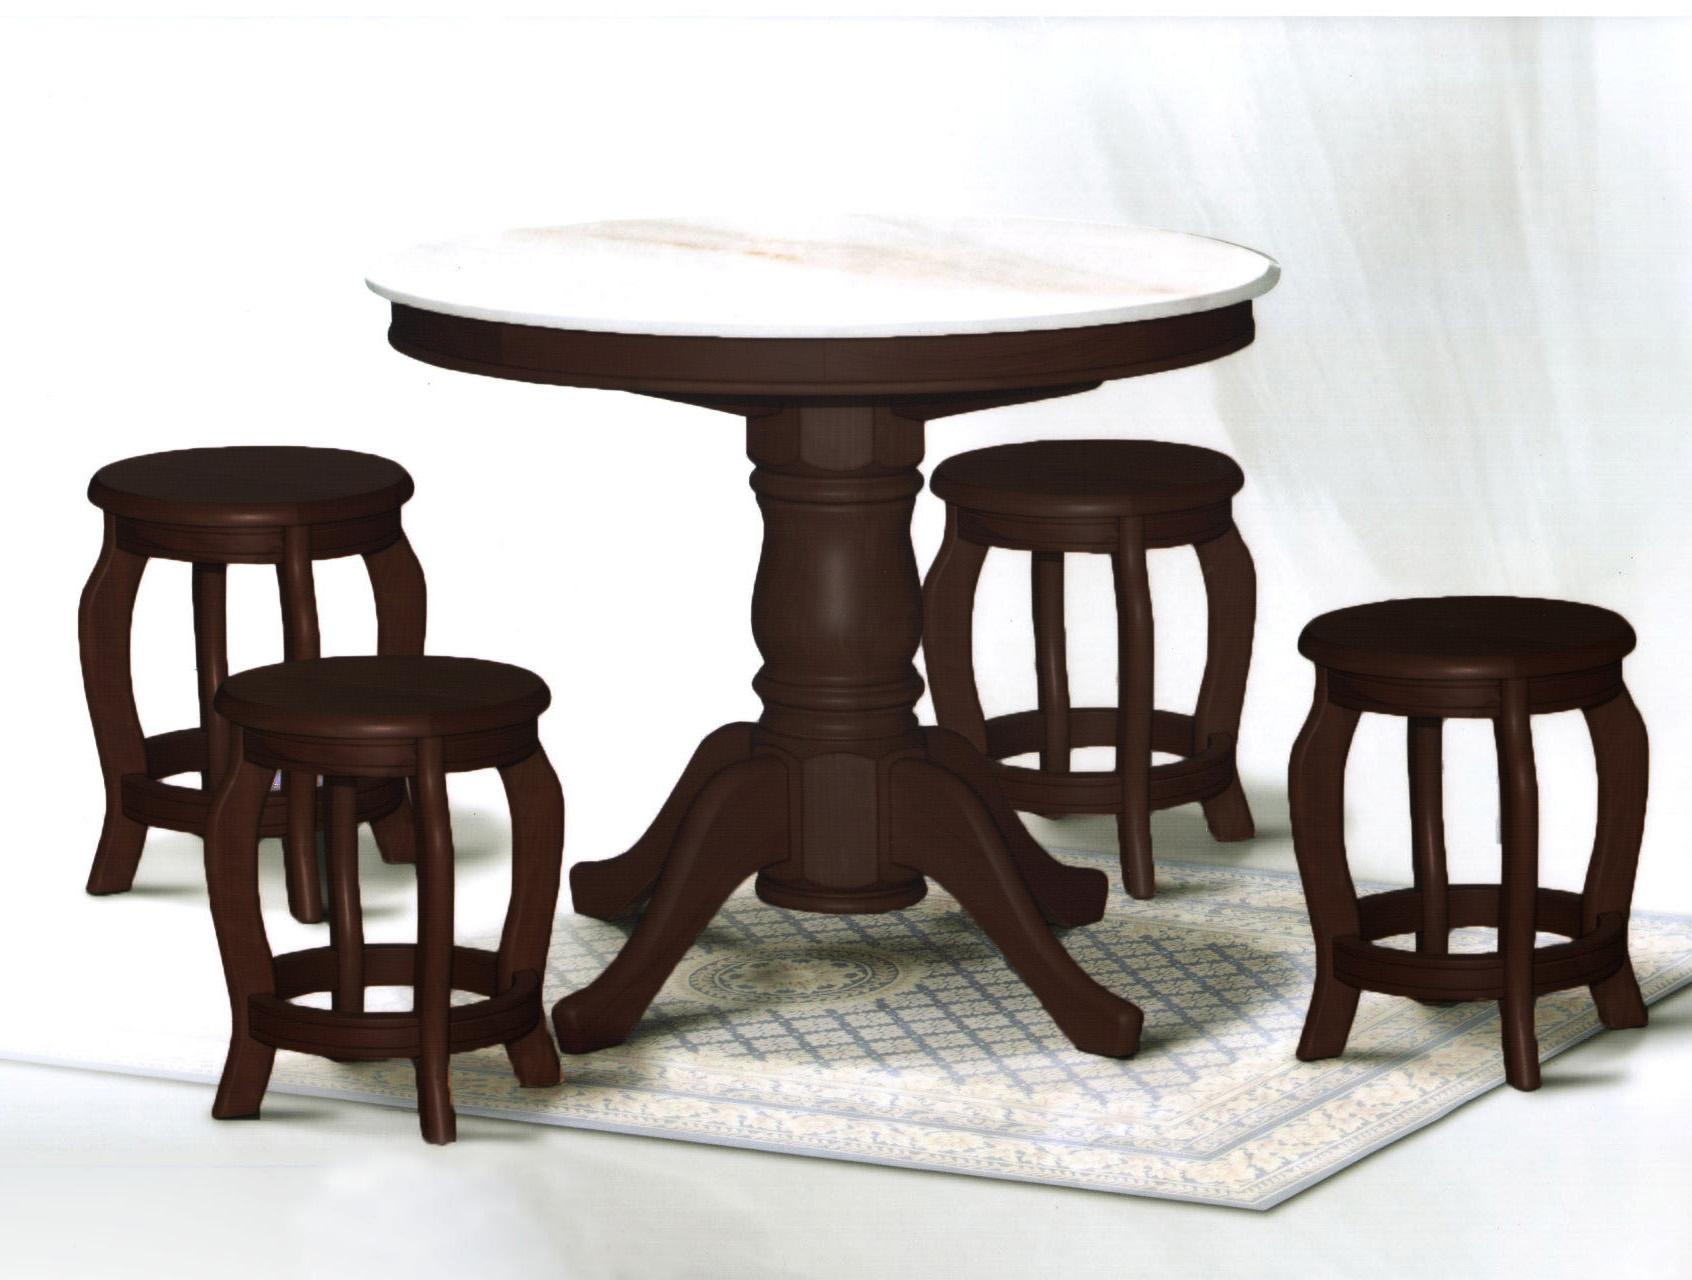 [A-STAR]  (1+4) Round Marble Table and Chair stool set